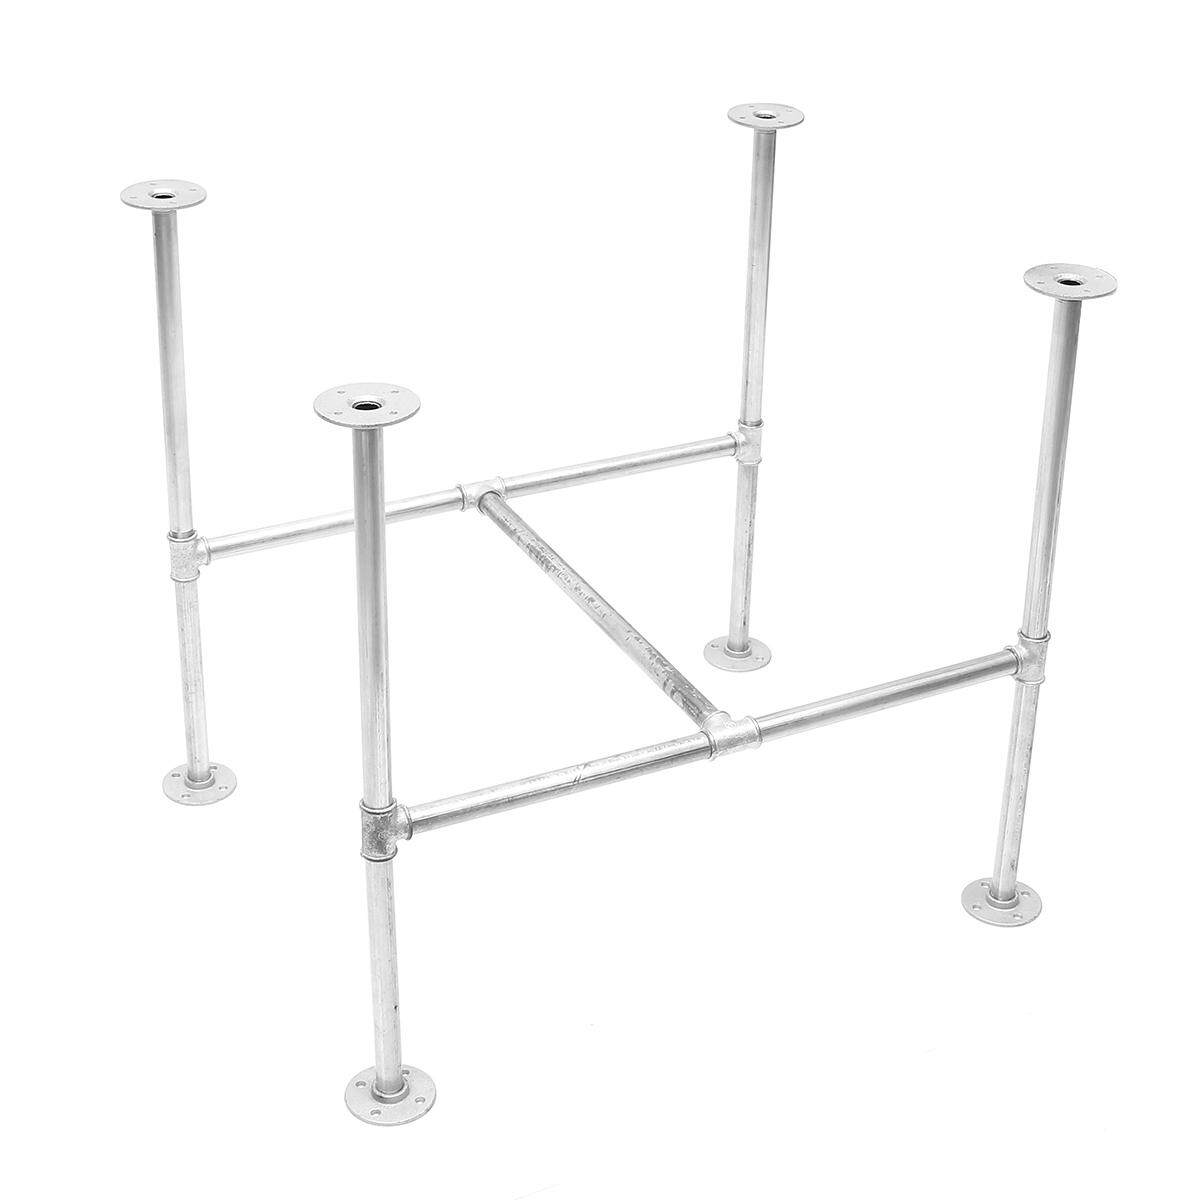 GALVANISED METAL PIPE TABLE BASE INDUSTRIAL DINING KITCHEN GARDEN TABLE DIY BAR(120cm)